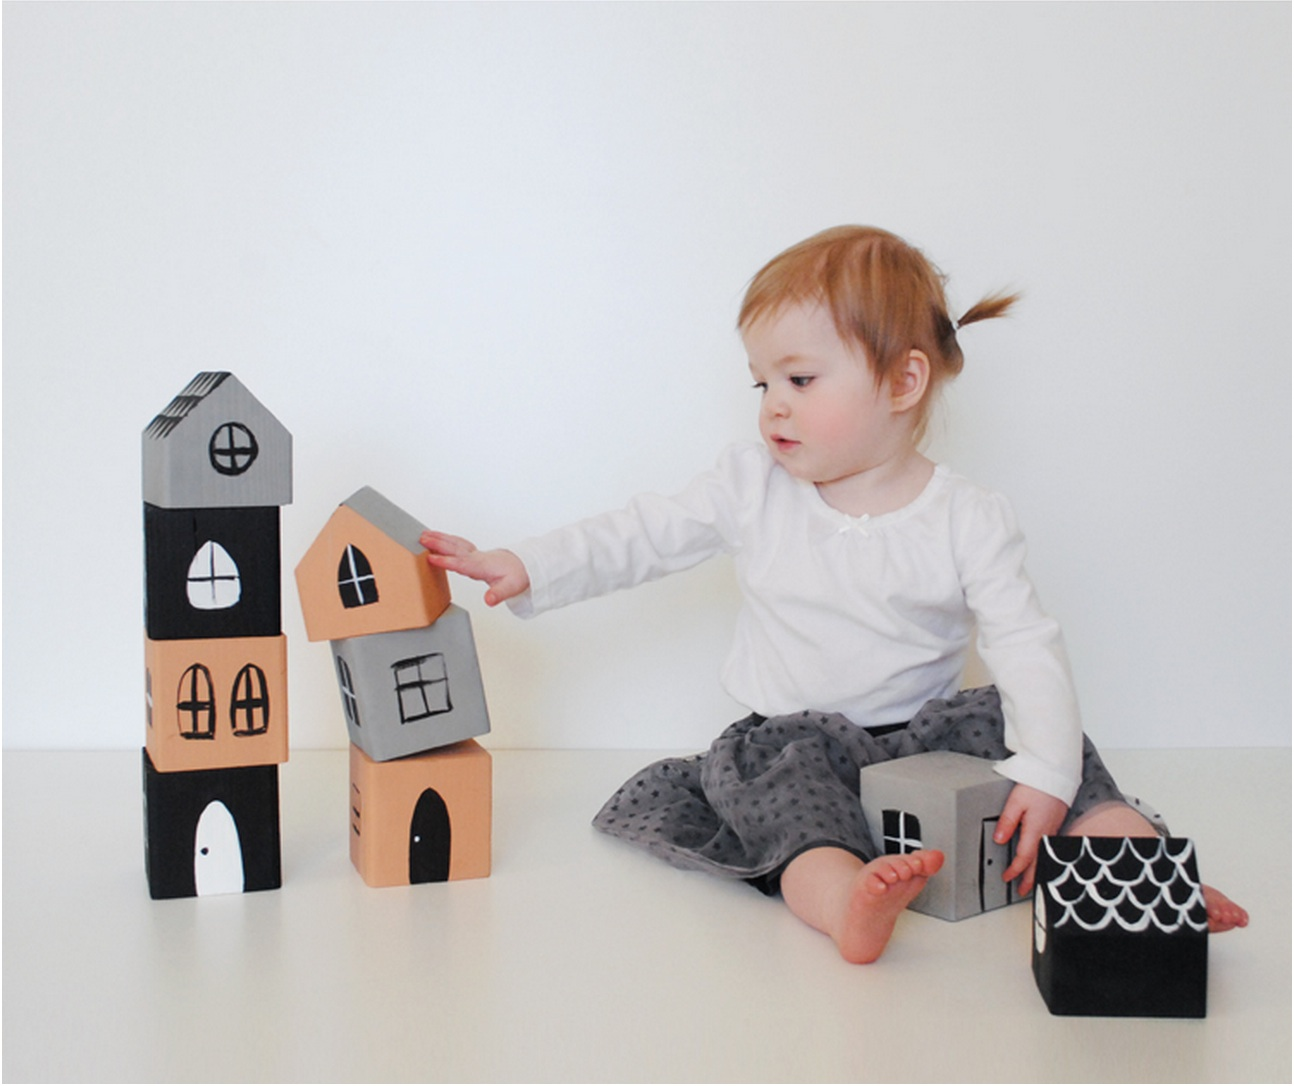 6 wooden blocks crafts to make those old toddler toys new and fun again